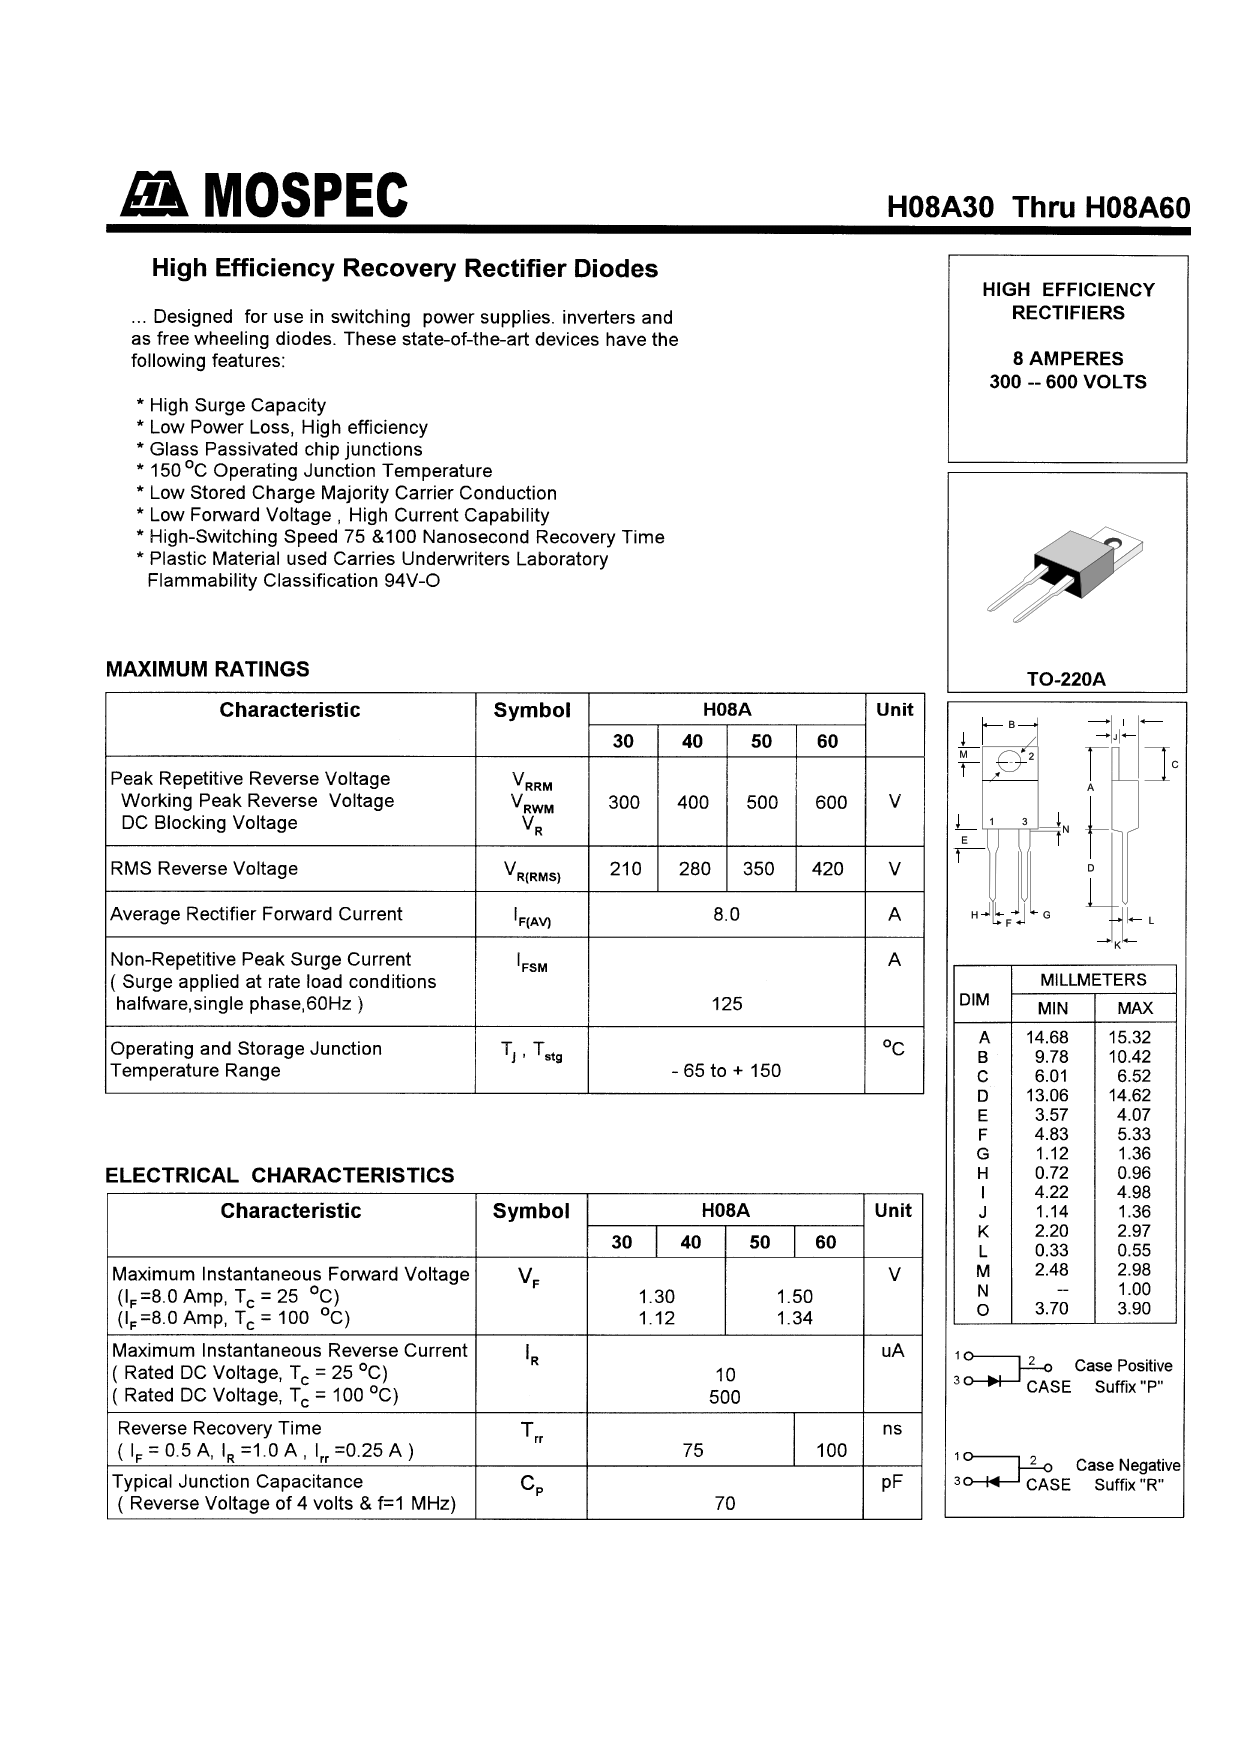 H08A30 Hoja de datos, Descripción, Manual